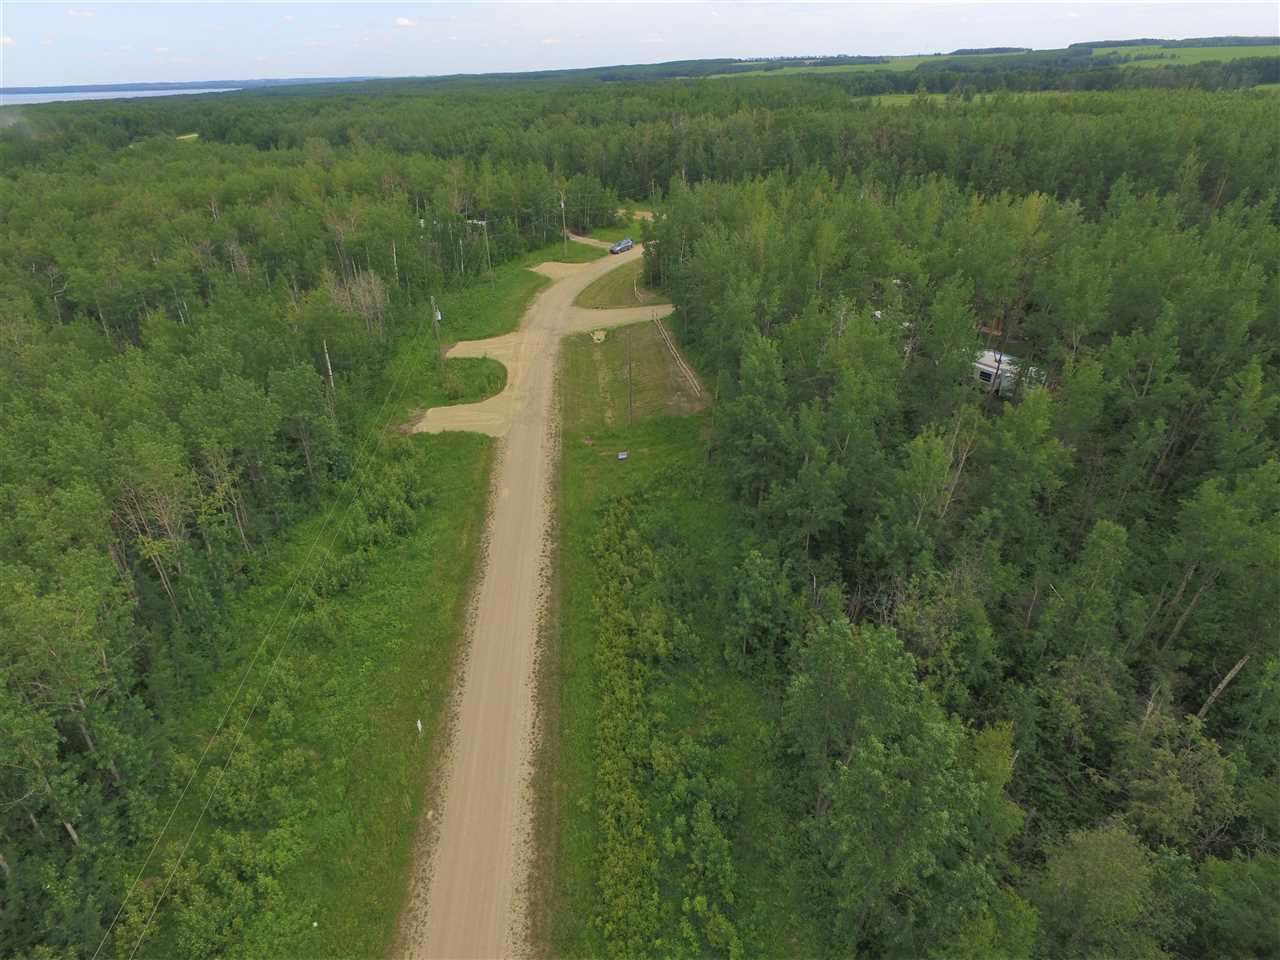 Photo 5: Photos: 11 13070 TWP RD 464: Rural Wetaskiwin County Rural Land/Vacant Lot for sale : MLS®# E4169948